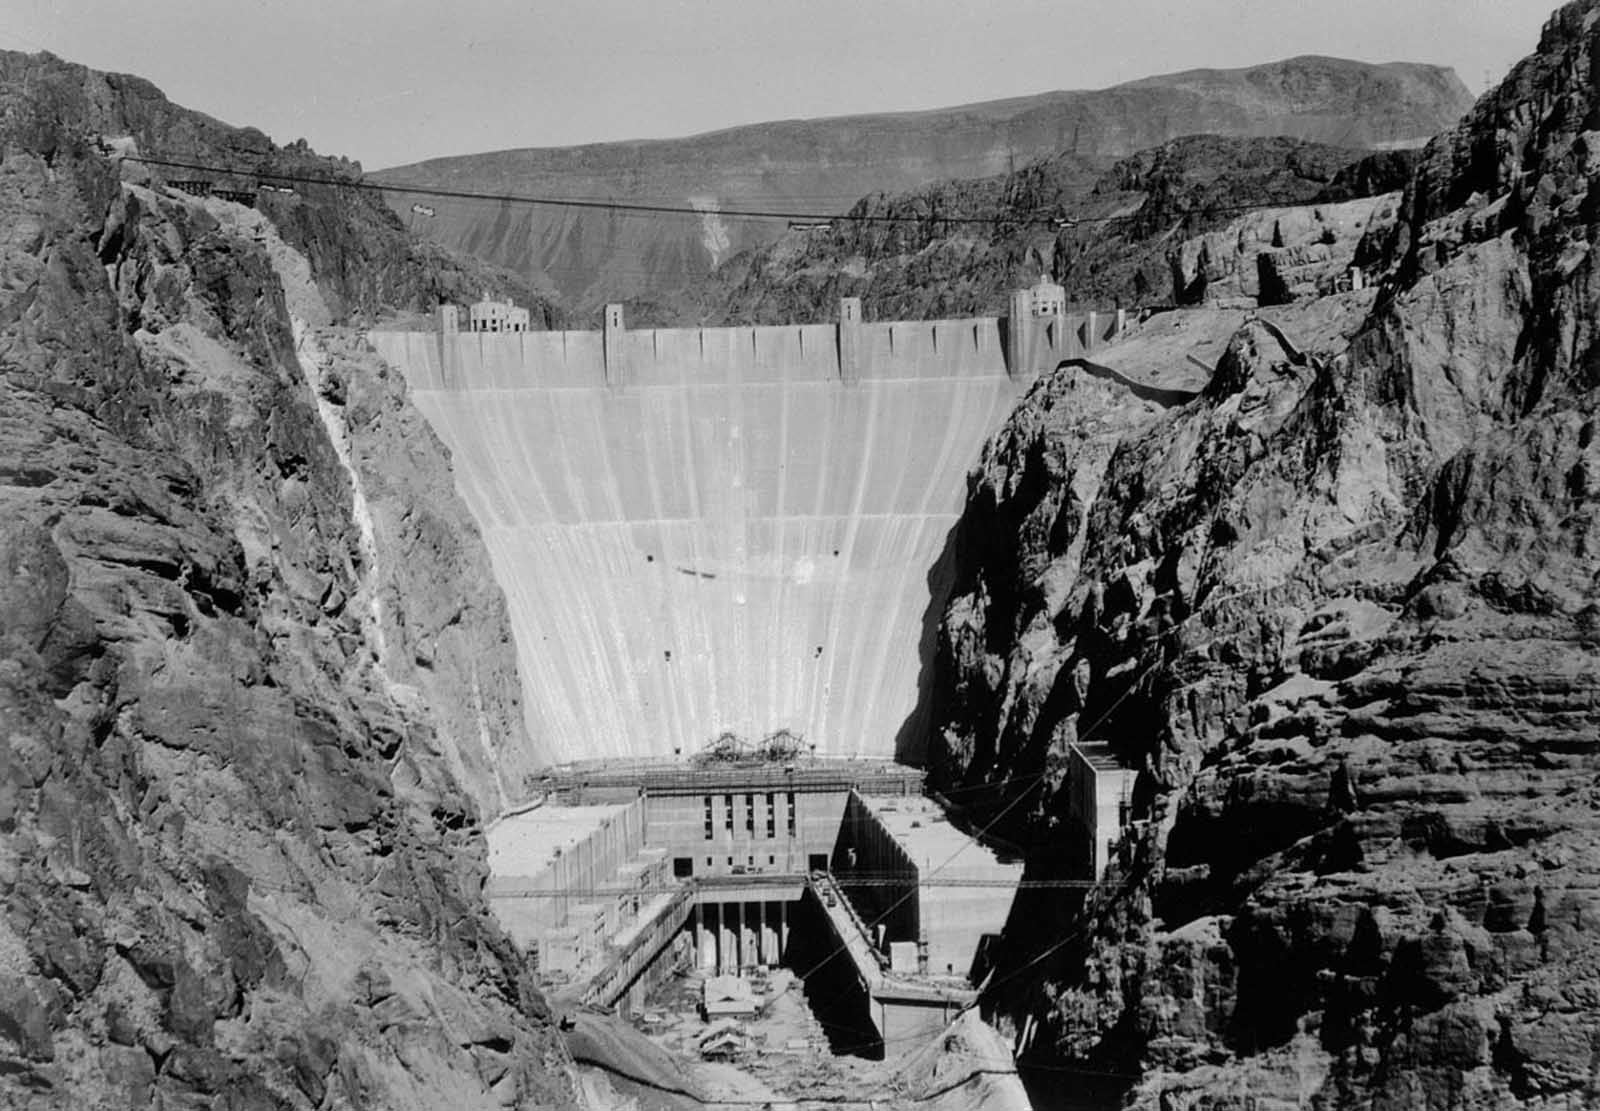 The dam nears completion. 1935.